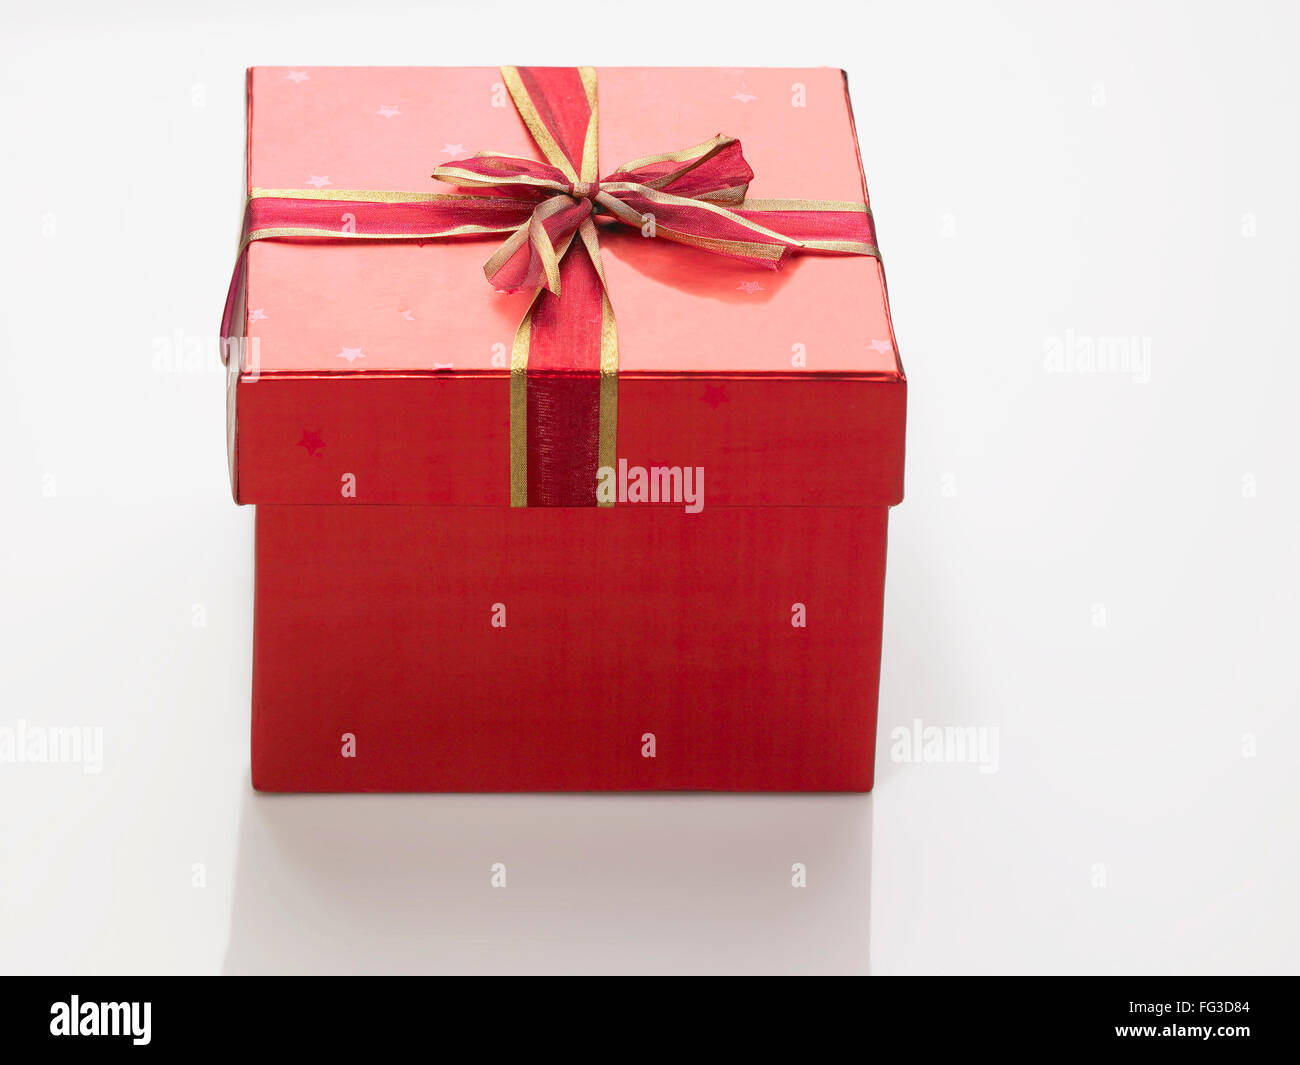 Red square gift box tied with ribbon bow shape - Stock Image